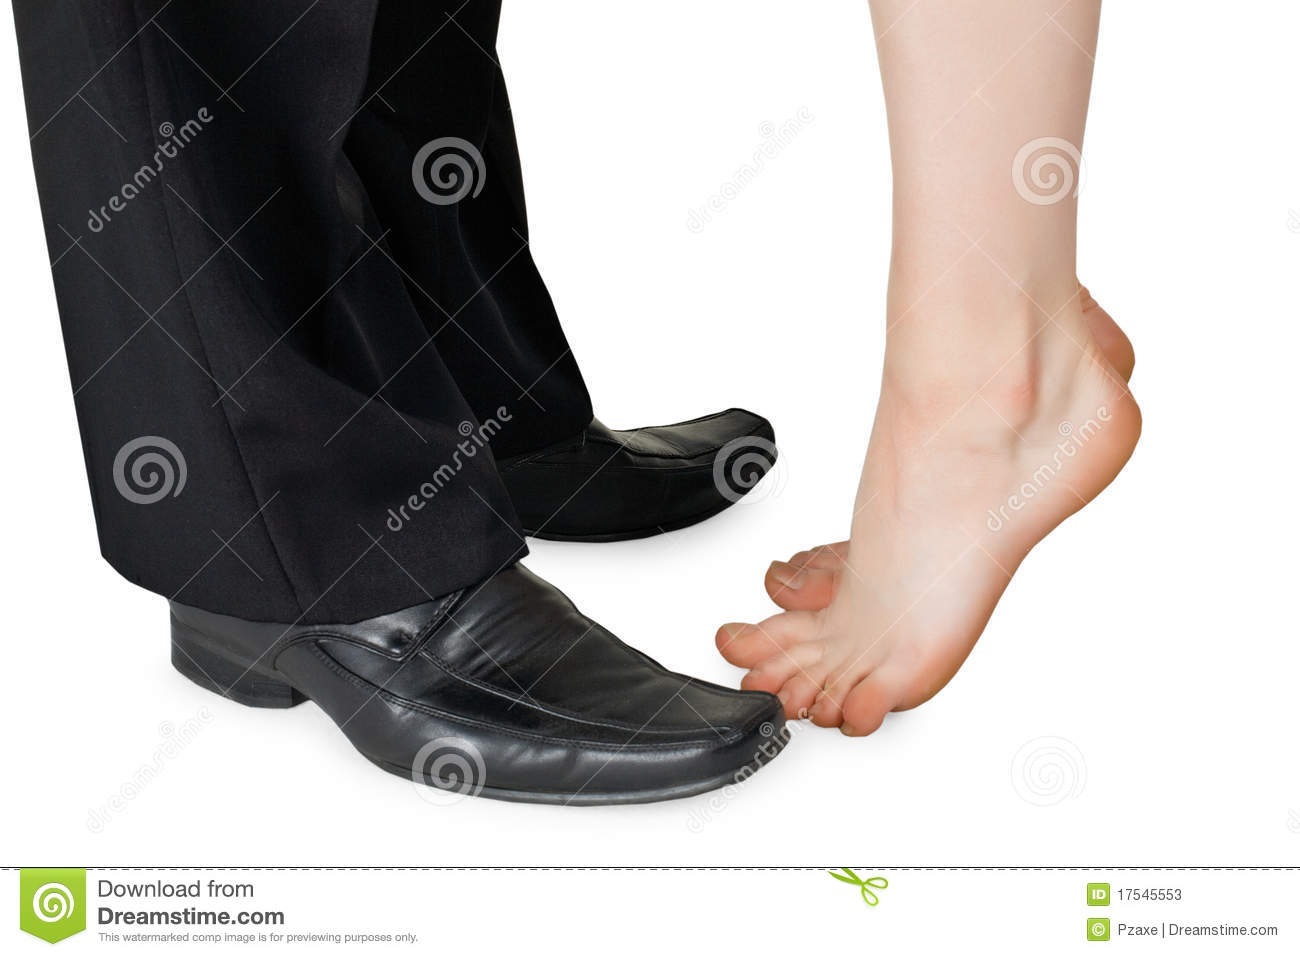 Feet Kissing A Man And Naked Woman Stock Image - Image Of Girlfriend, Legs 17545553-9531